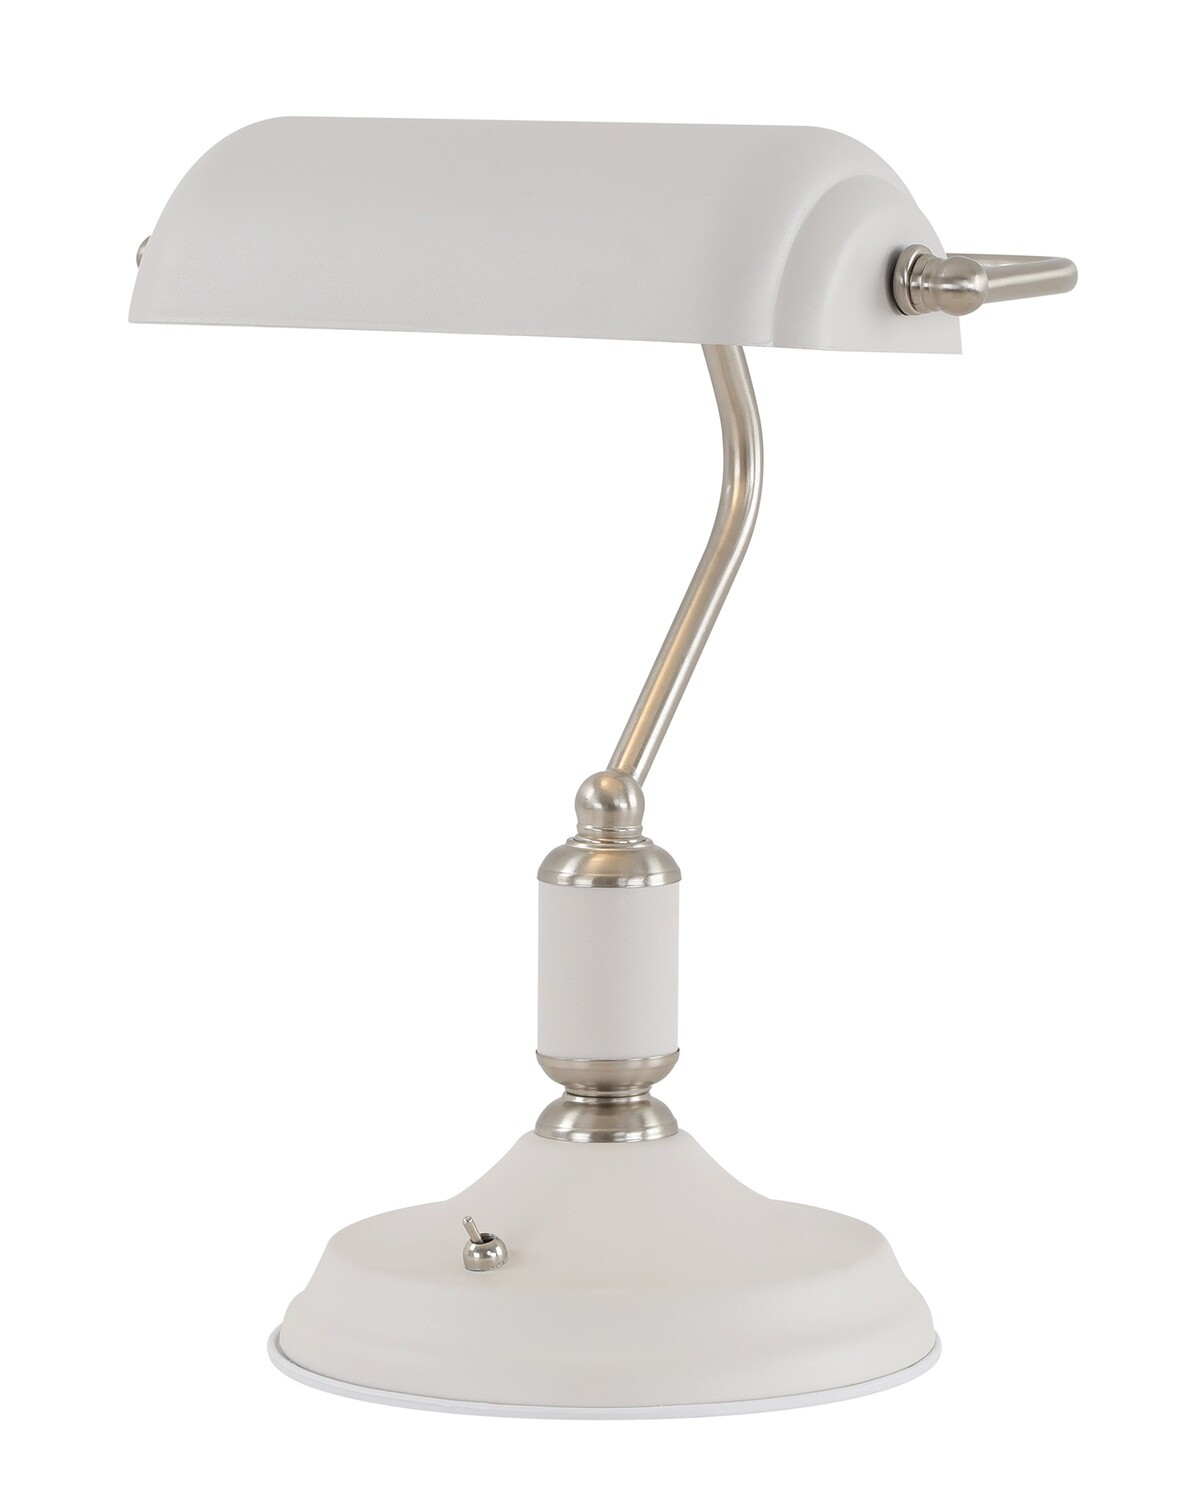 Lumina Table Lamp 1 Light With Toggle Switch, Sand White/Satin Nickel